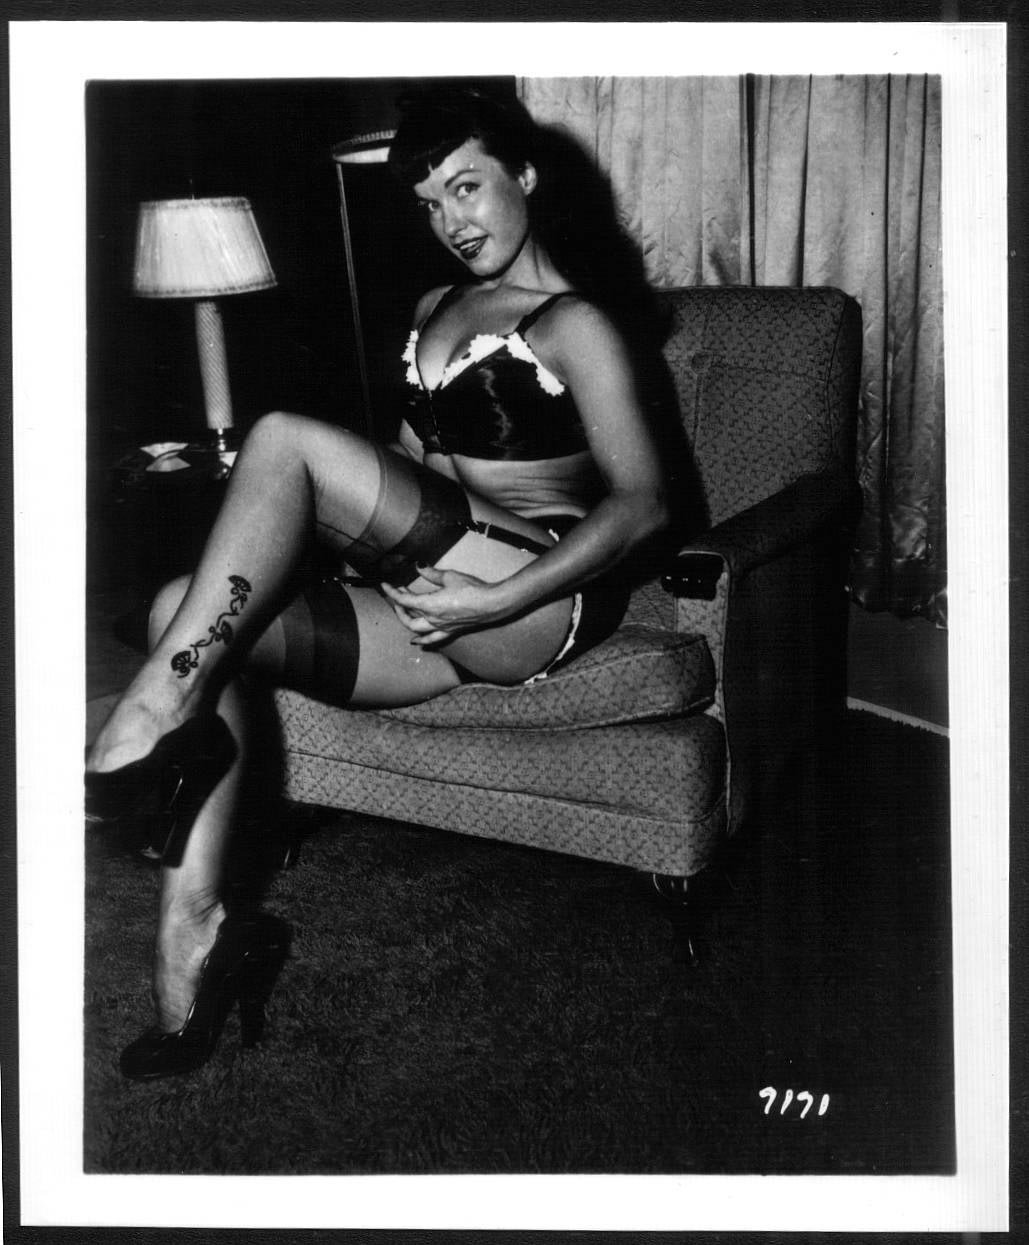 BETTY/BETTIE PAGE VINTAGE IRVING KLAW PHOTO 4X5  #7171